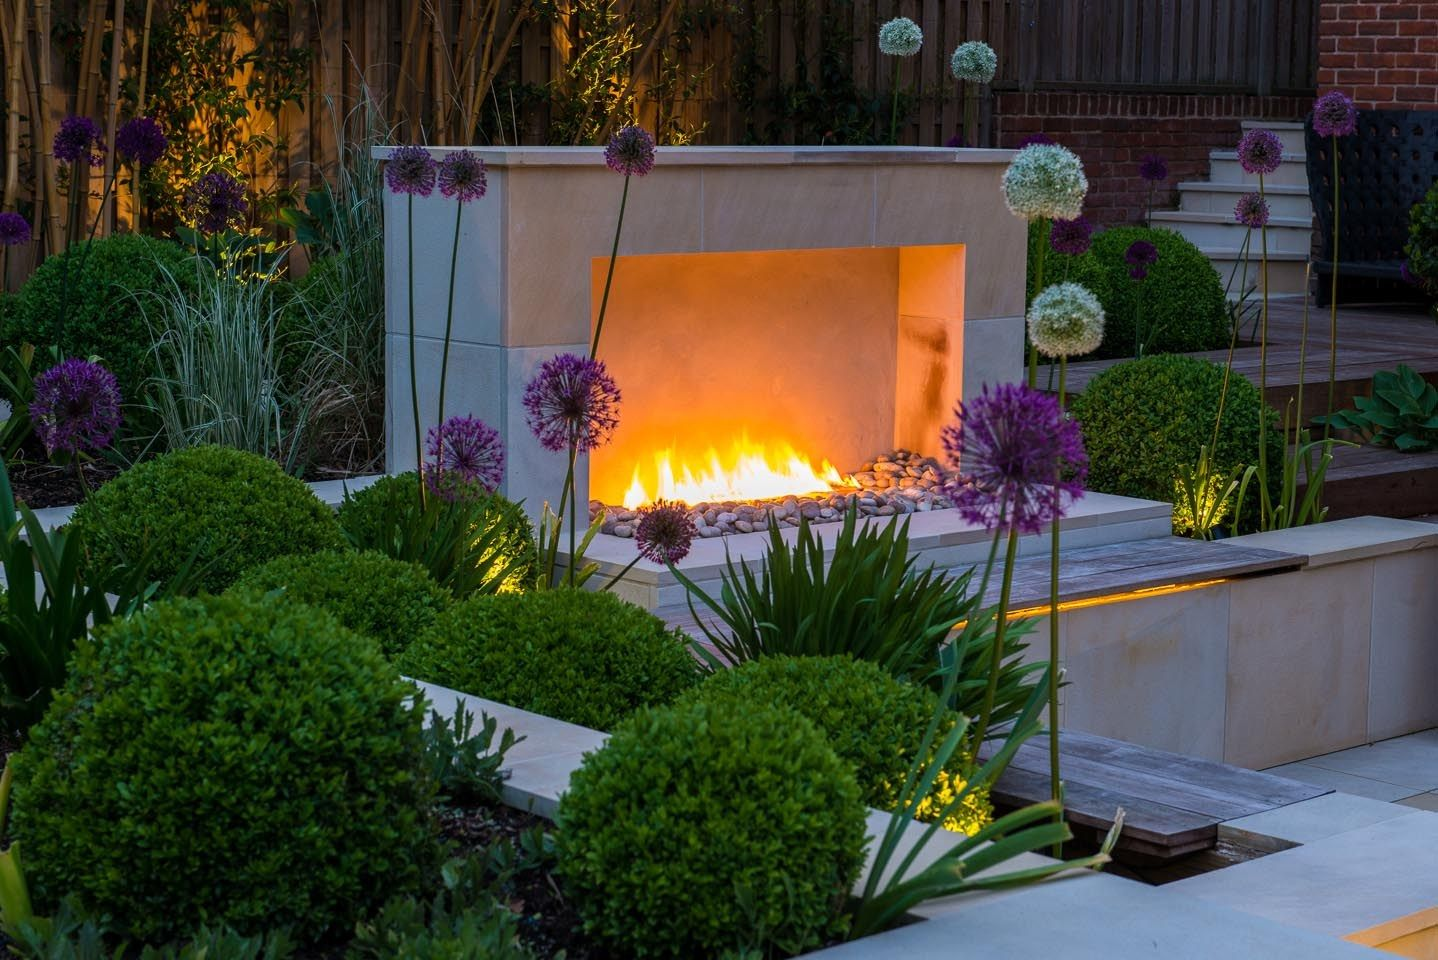 A garden for outside use all year with an exterior gas fireplace